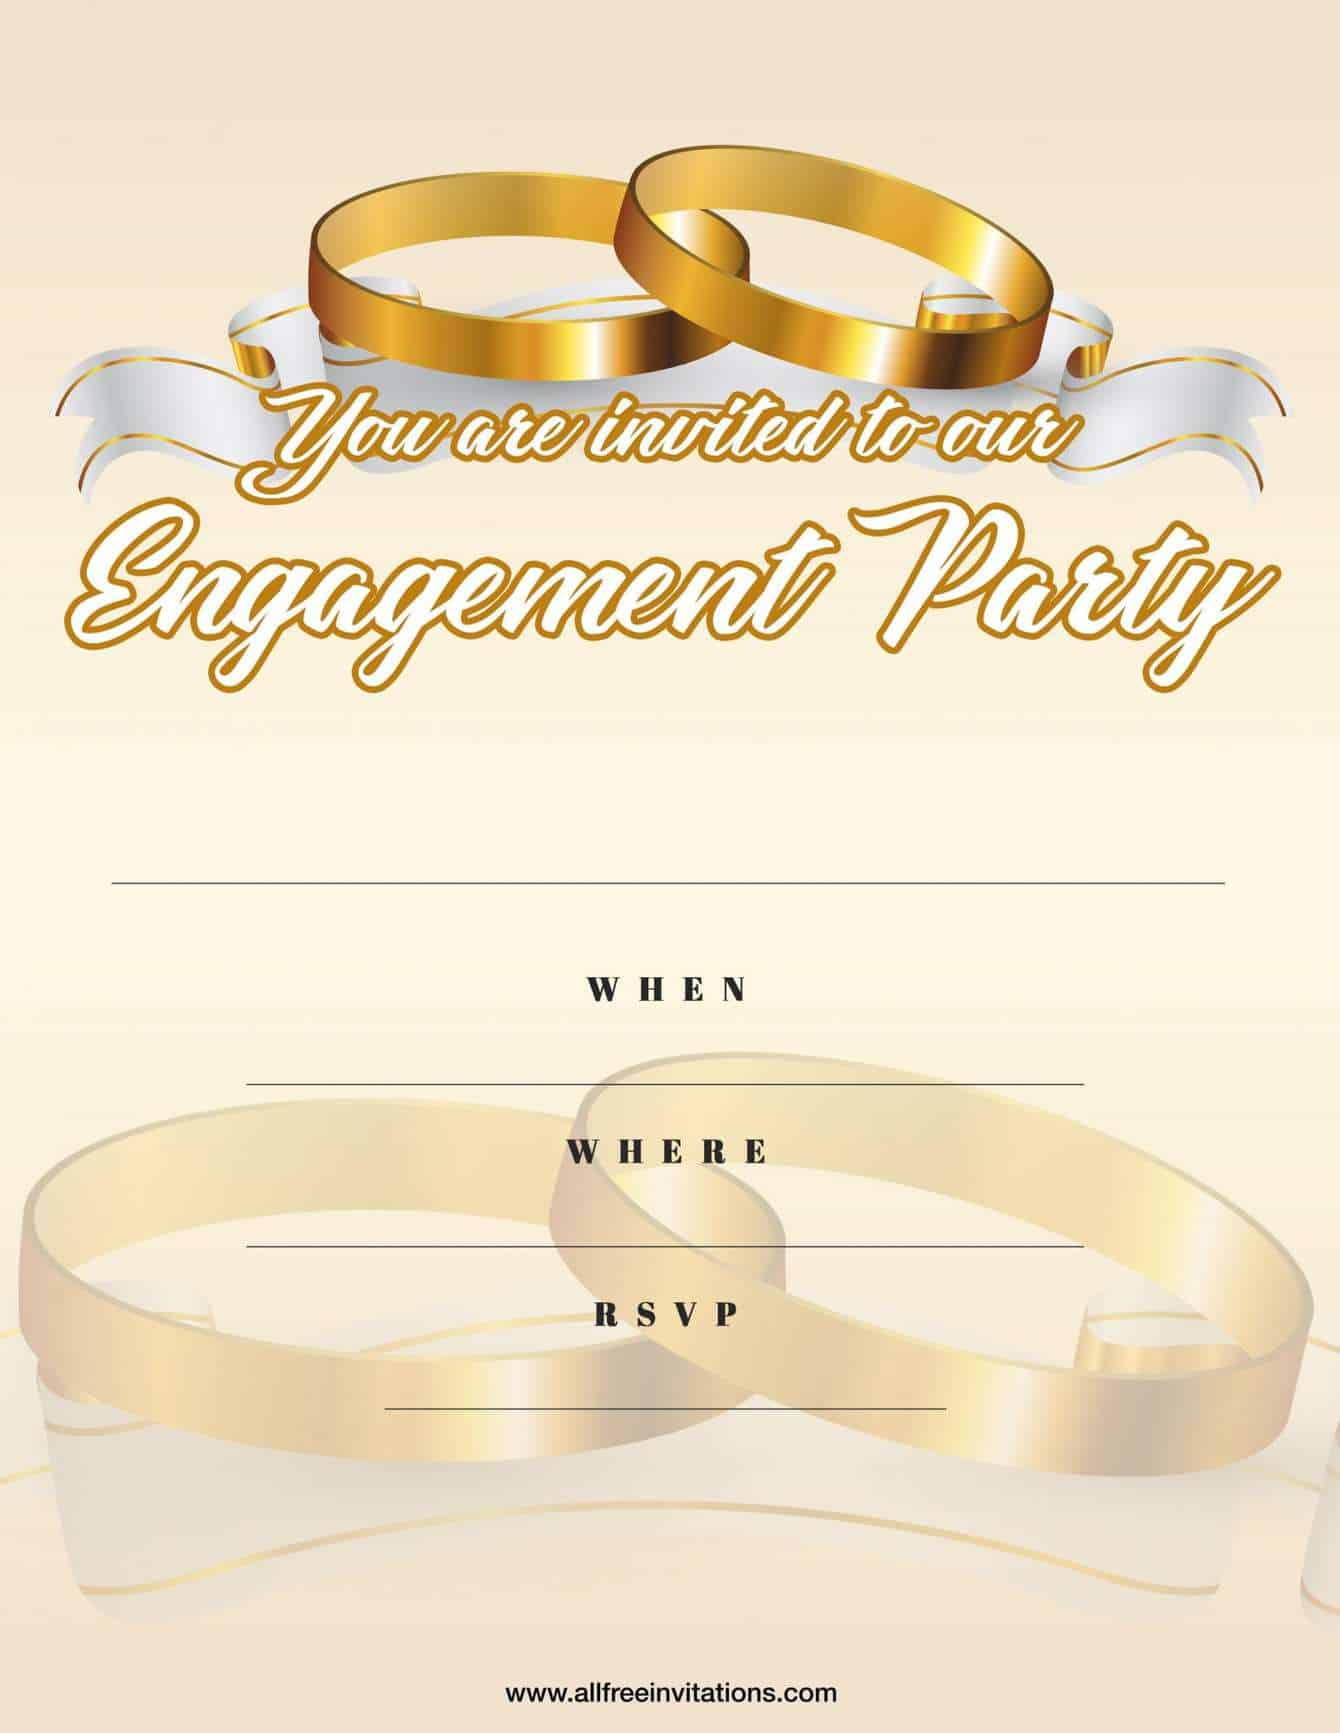 Engagement party invitation beige and gold design